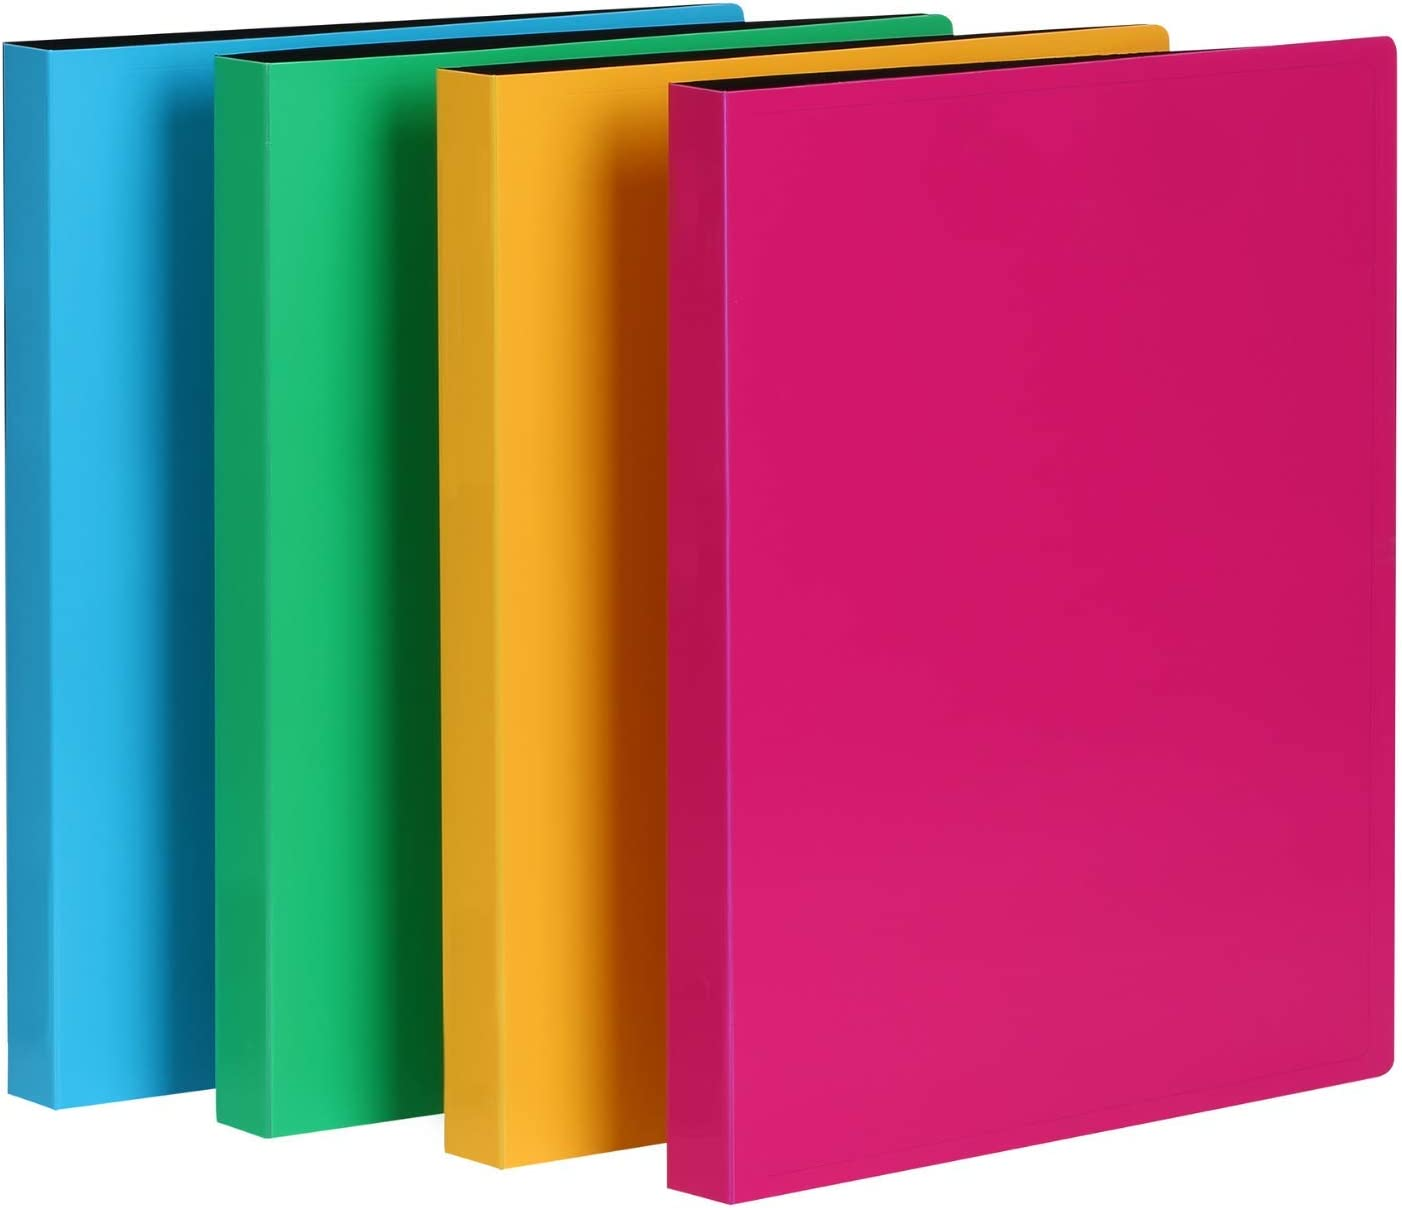 CRANBURY Assorted Color Presentation Books Popular Courier shipping free - P Colorful 4-Pack